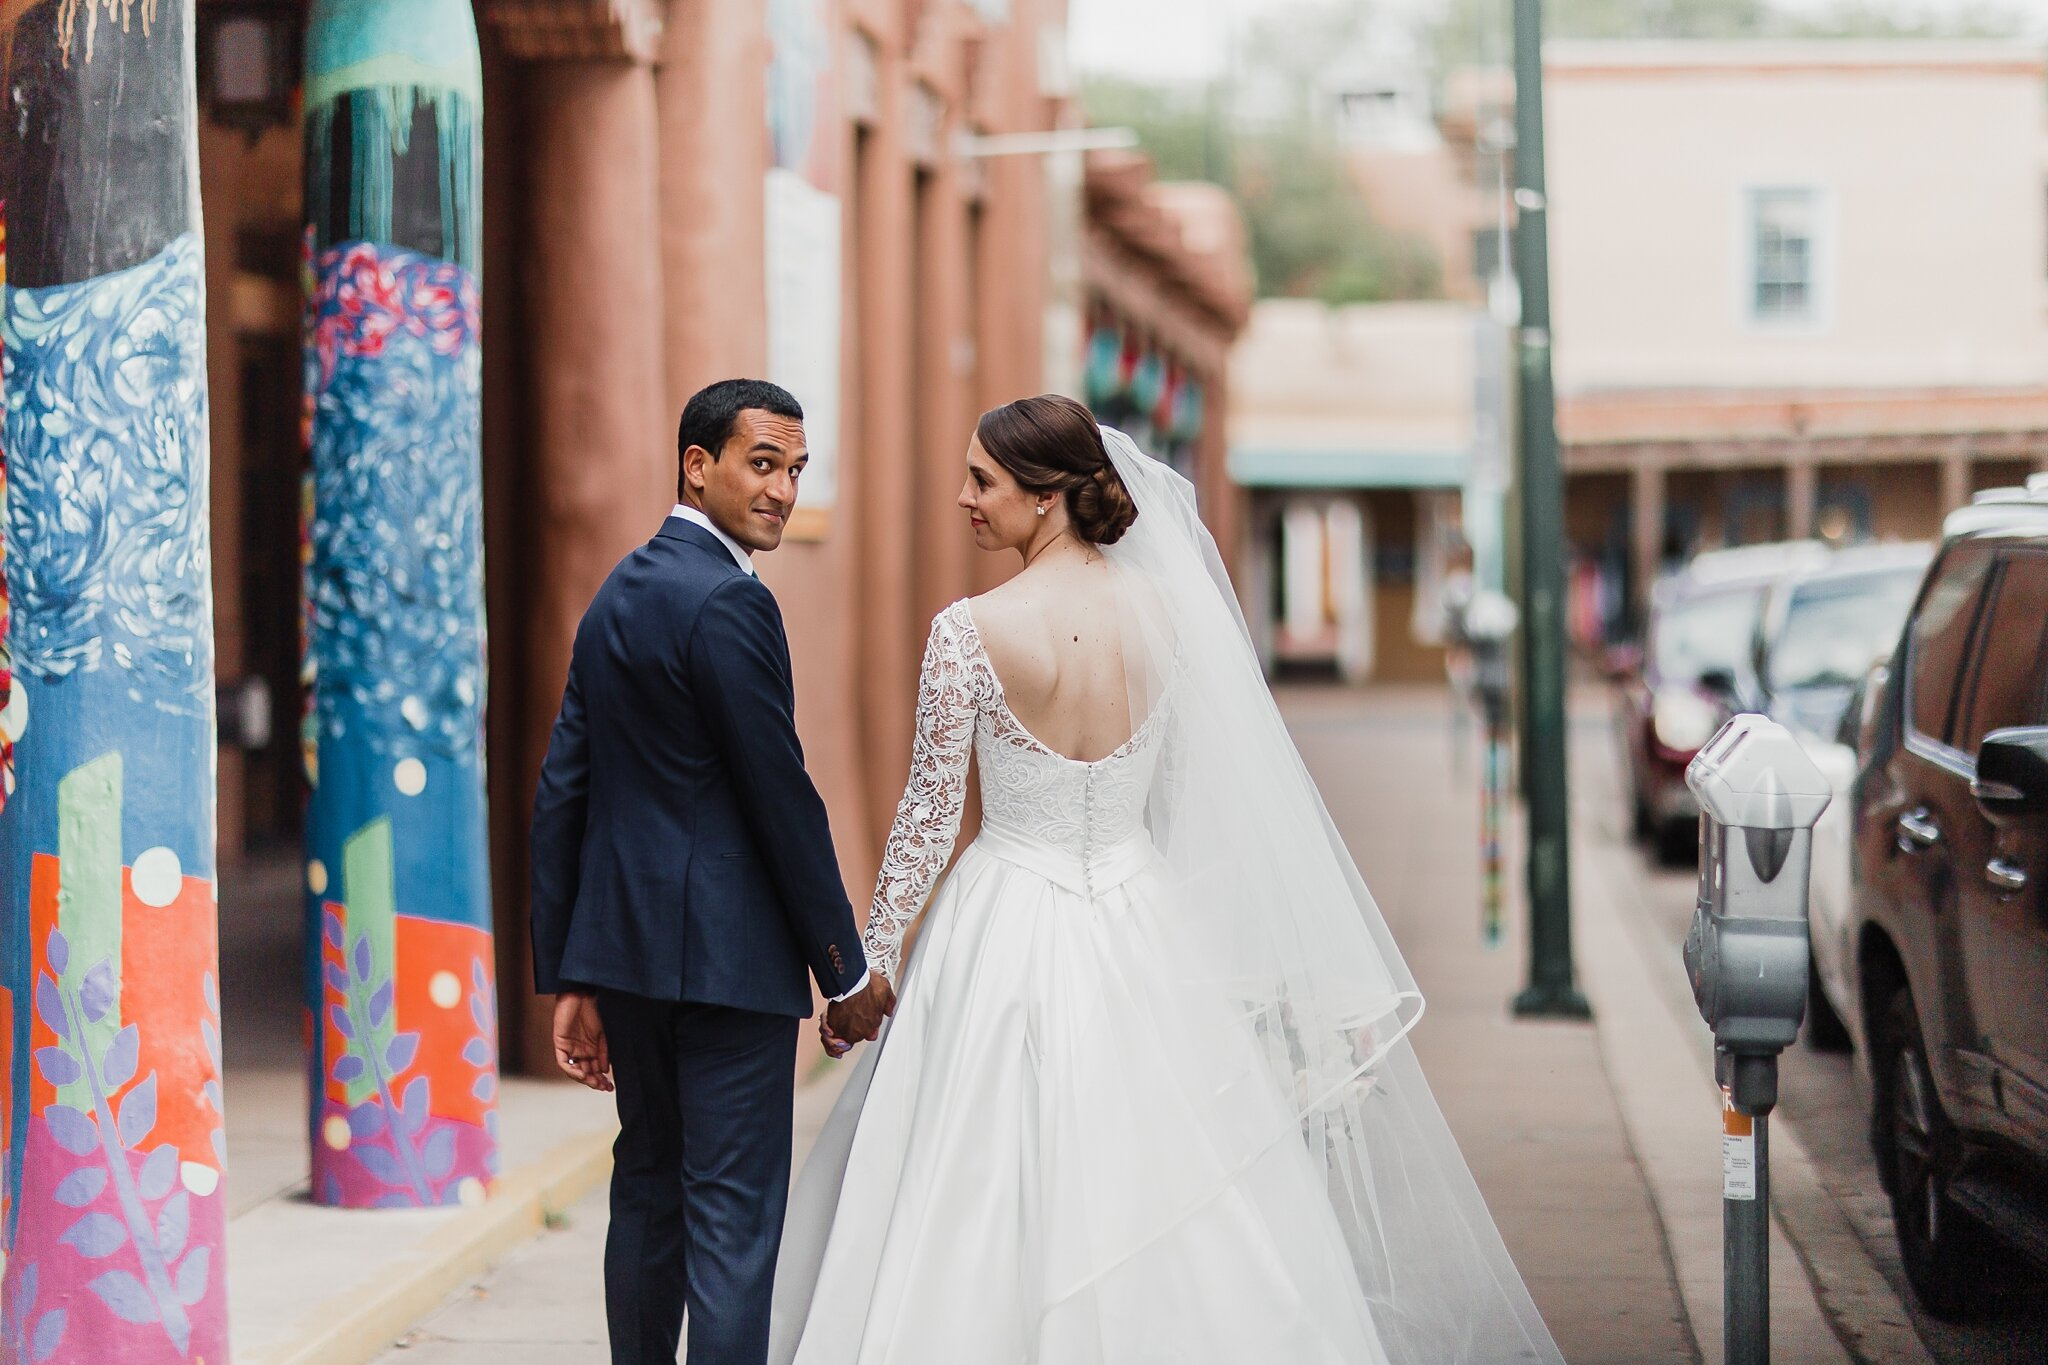 Alicia+lucia+photography+-+albuquerque+wedding+photographer+-+santa+fe+wedding+photography+-+new+mexico+wedding+photographer+-+new+mexico+wedding+-+hindu+wedding+-+catholic+wedding+-+multicultural+wedding+-+santa+fe+wedding_0071.jpg